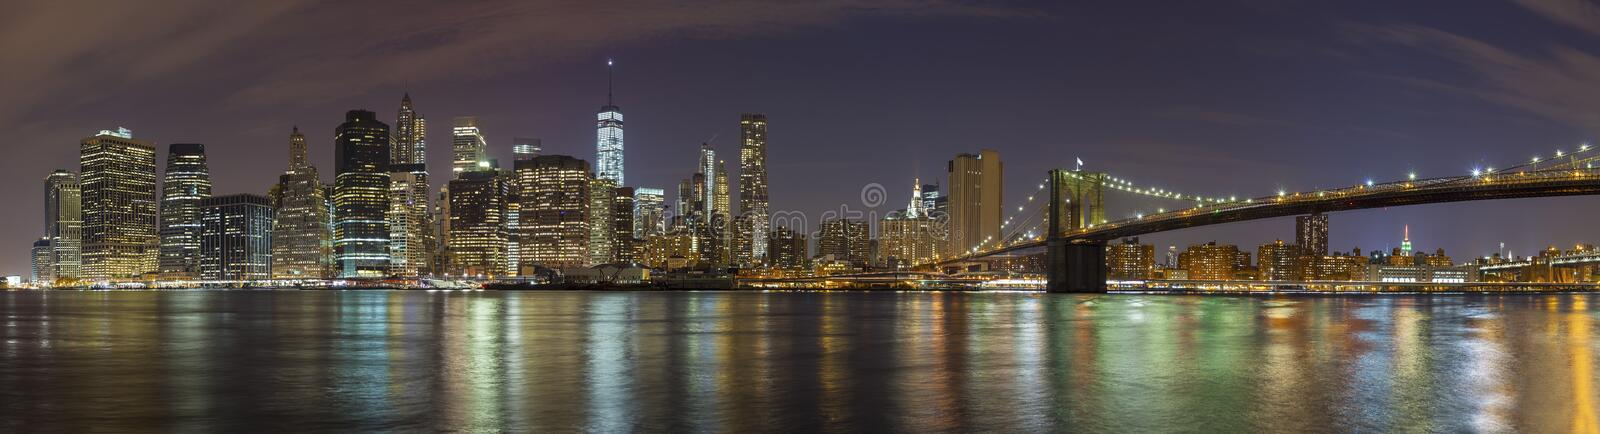 Manhattan-Skyline nachts, panoramisches Bild New York City stockfoto